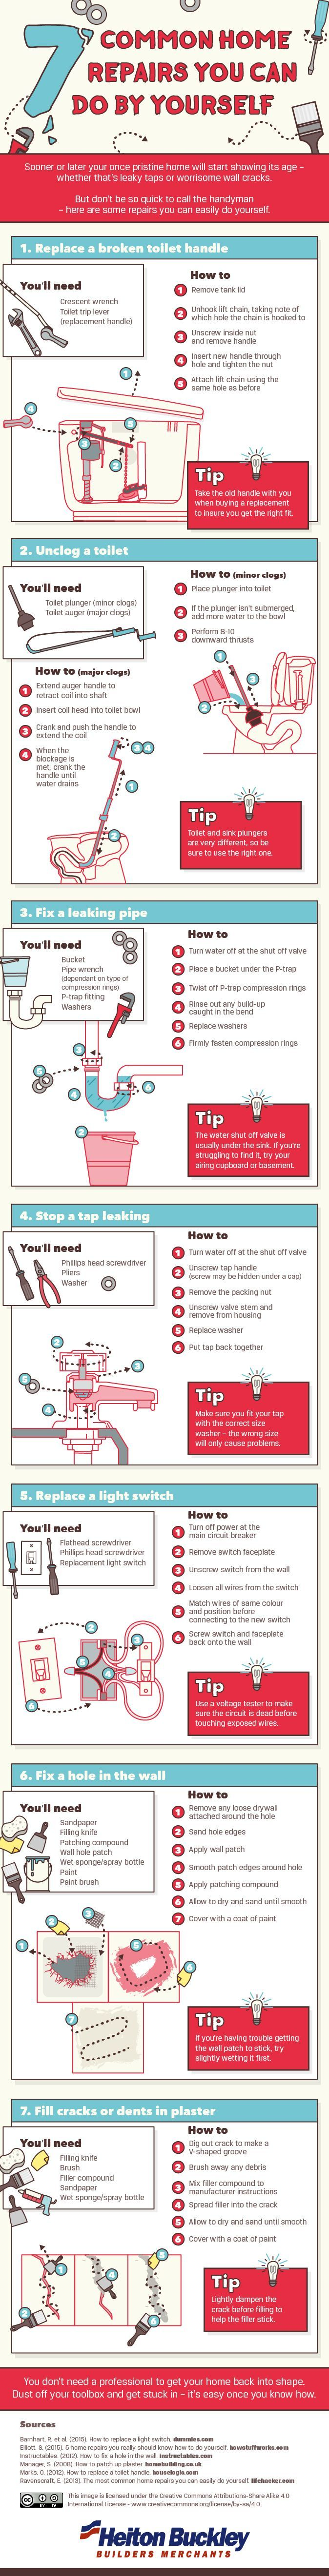 7 common home repairs you can do by yourself infographic 7 common home repairs you can do by yourself solutioingenieria Images